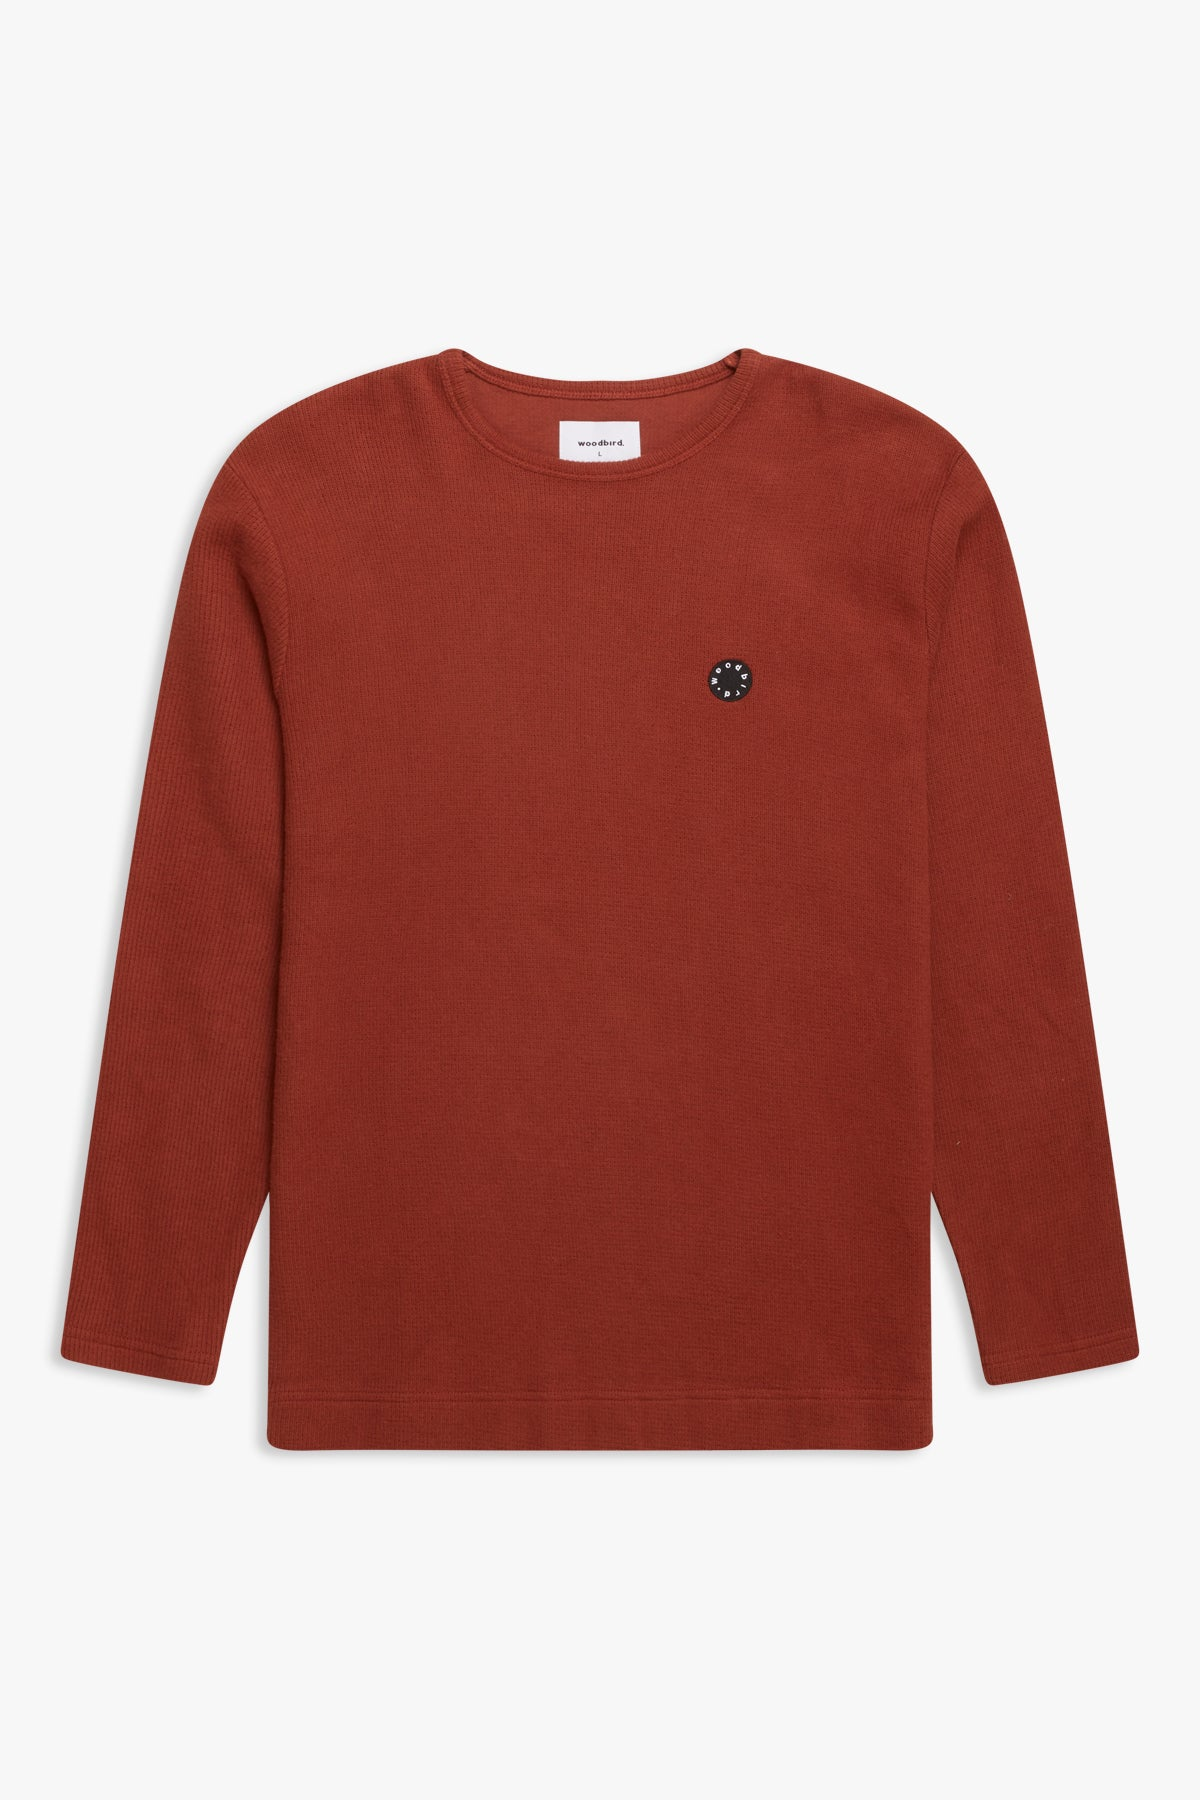 Woodbird Gong Vel Sweat Sweats Clay Brown